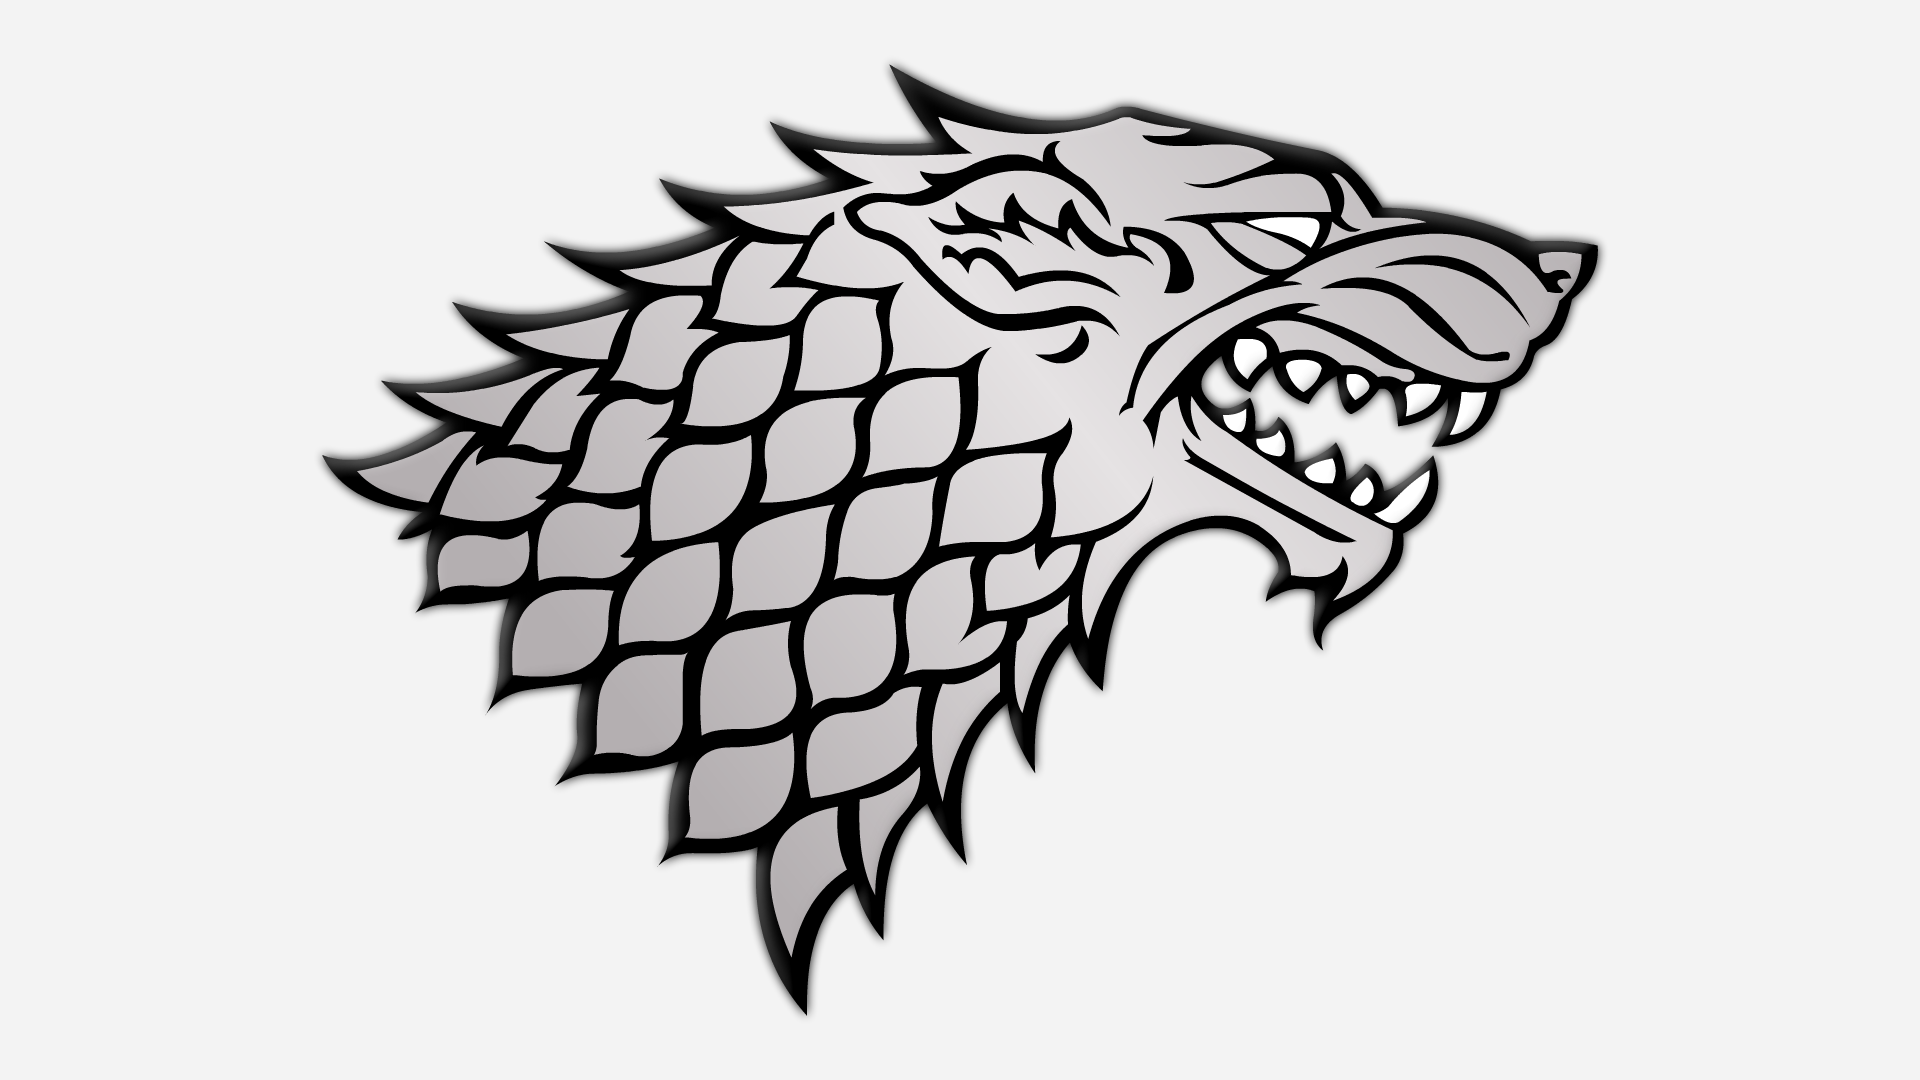 House Stark Symbol by Yurtigo on DeviantArt